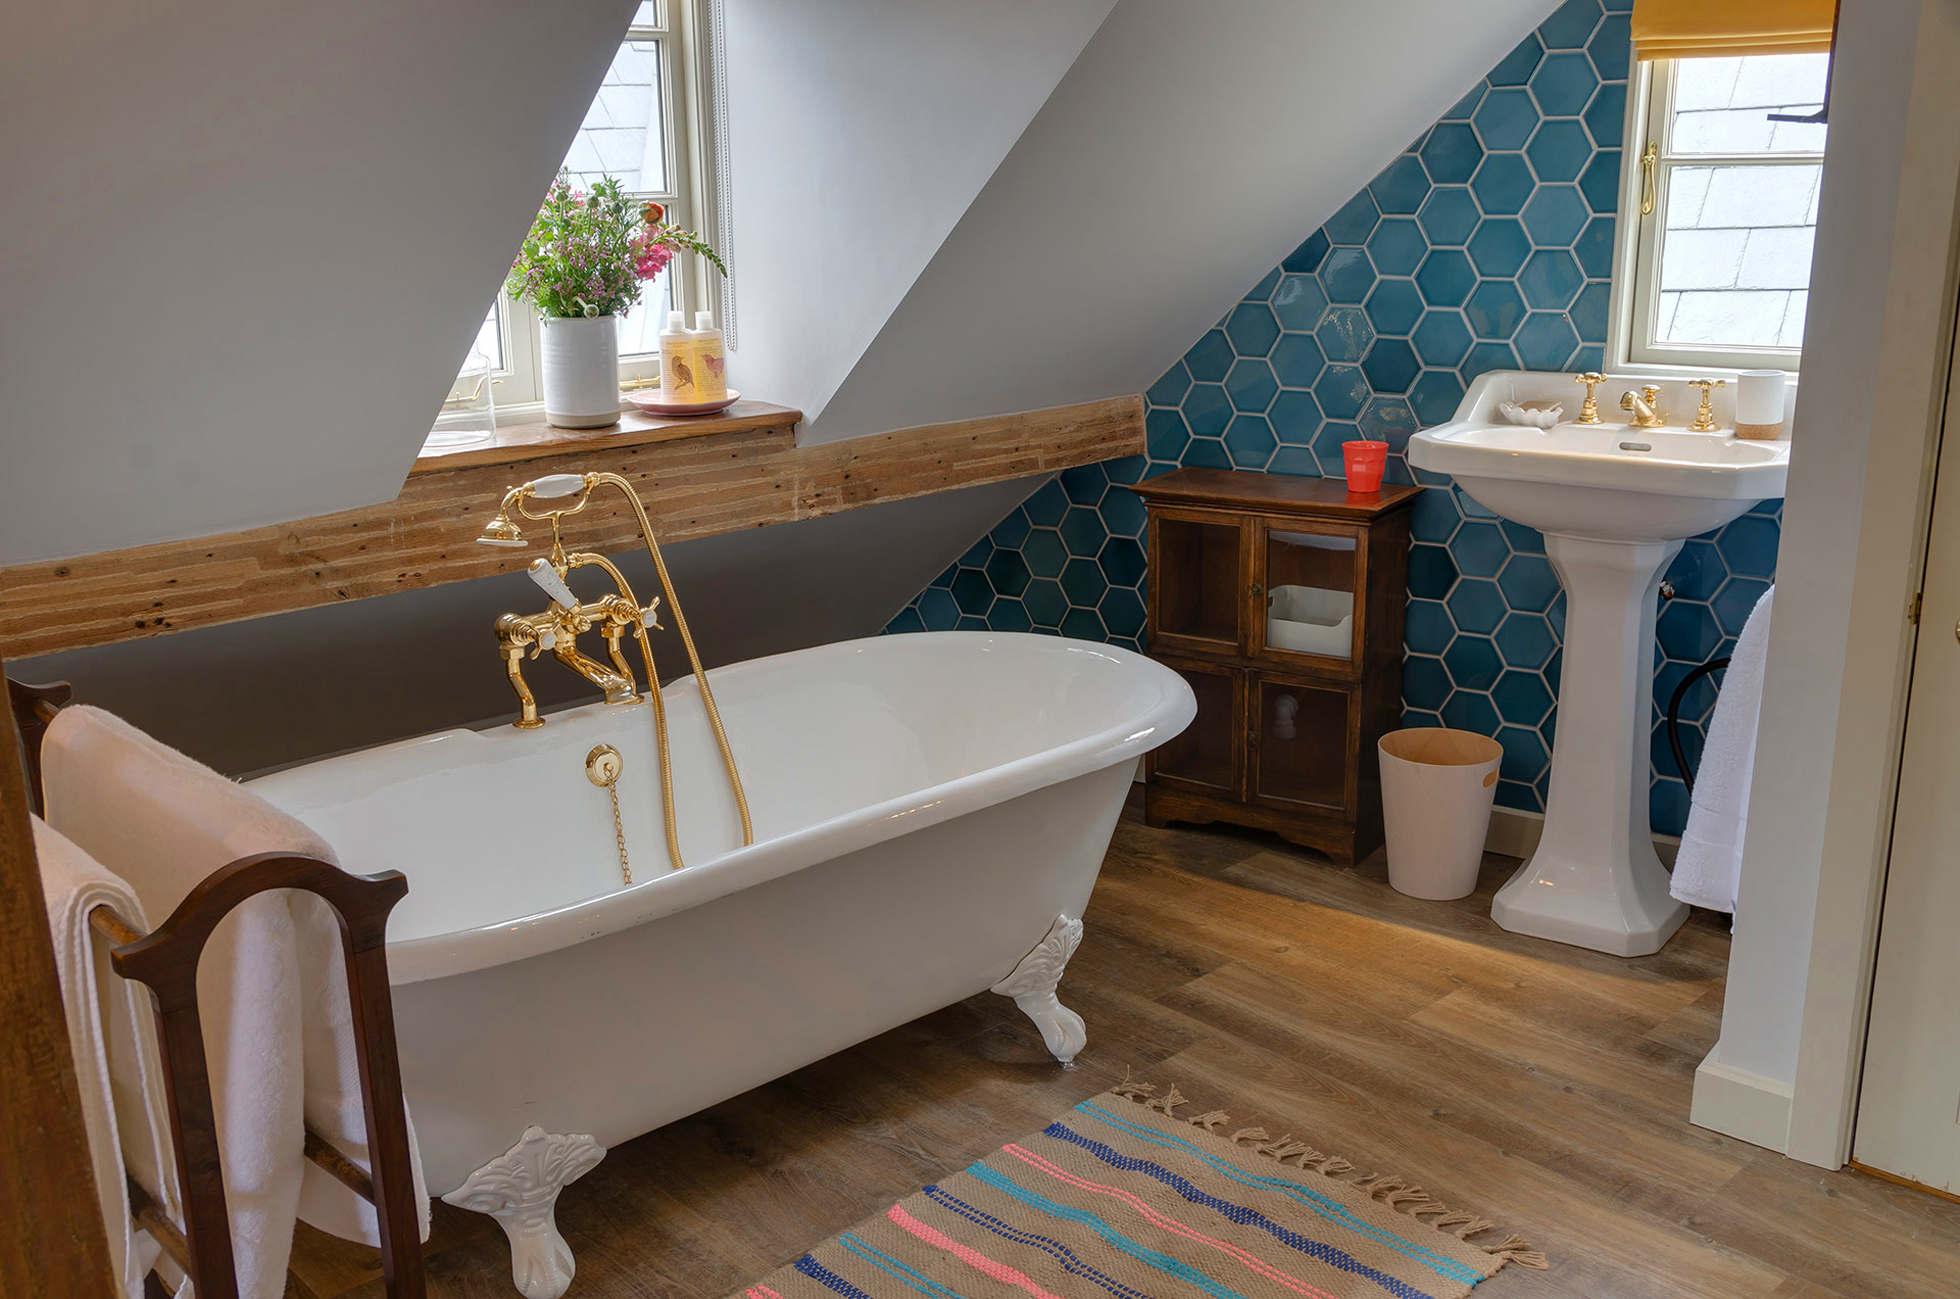 Renovated attic bathroom with hex tile wall